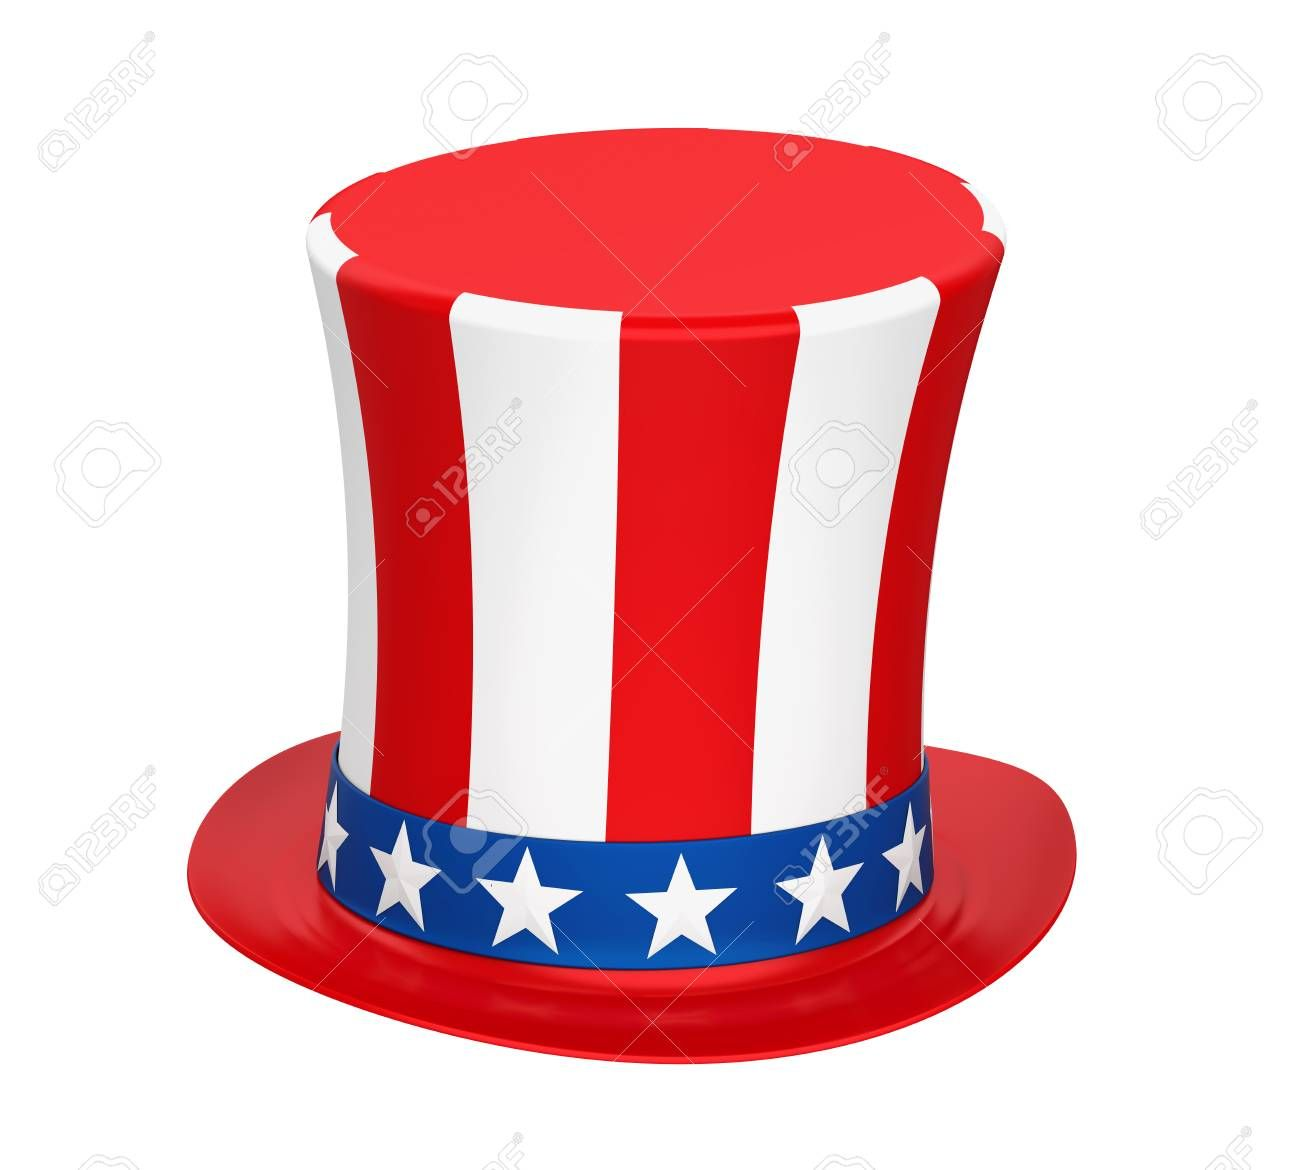 96925167-uncle-sam-hat-isolated.jpg